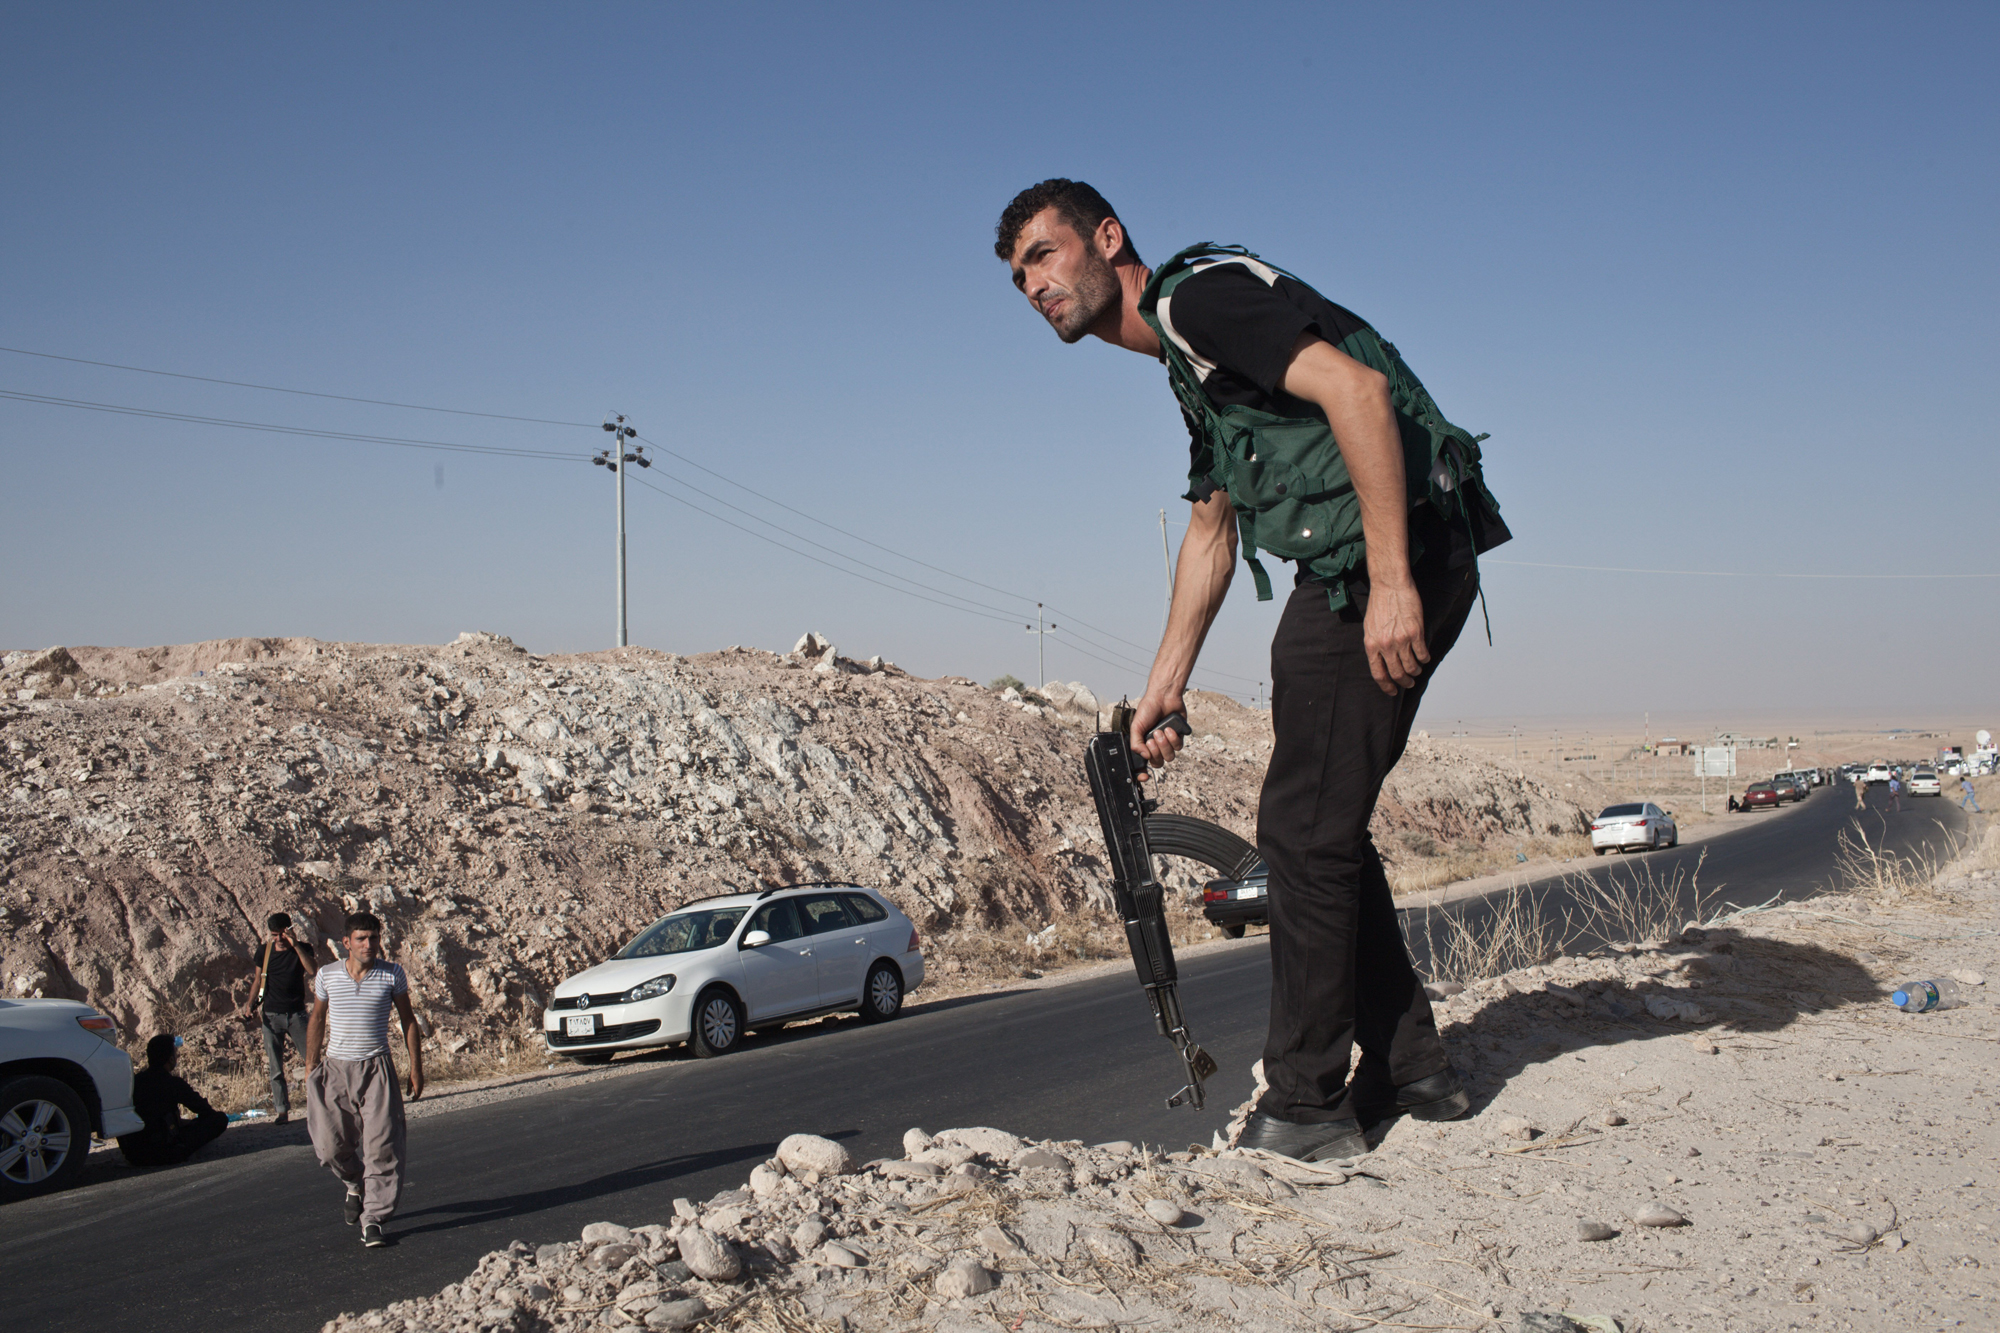 Kurdish military volunteers amass near the frontline at the outskirts of the town of Makhmor, 35 miles south of Erbil, the capital of the Kurdish Region of Iraq, Aug. 9. 2014.